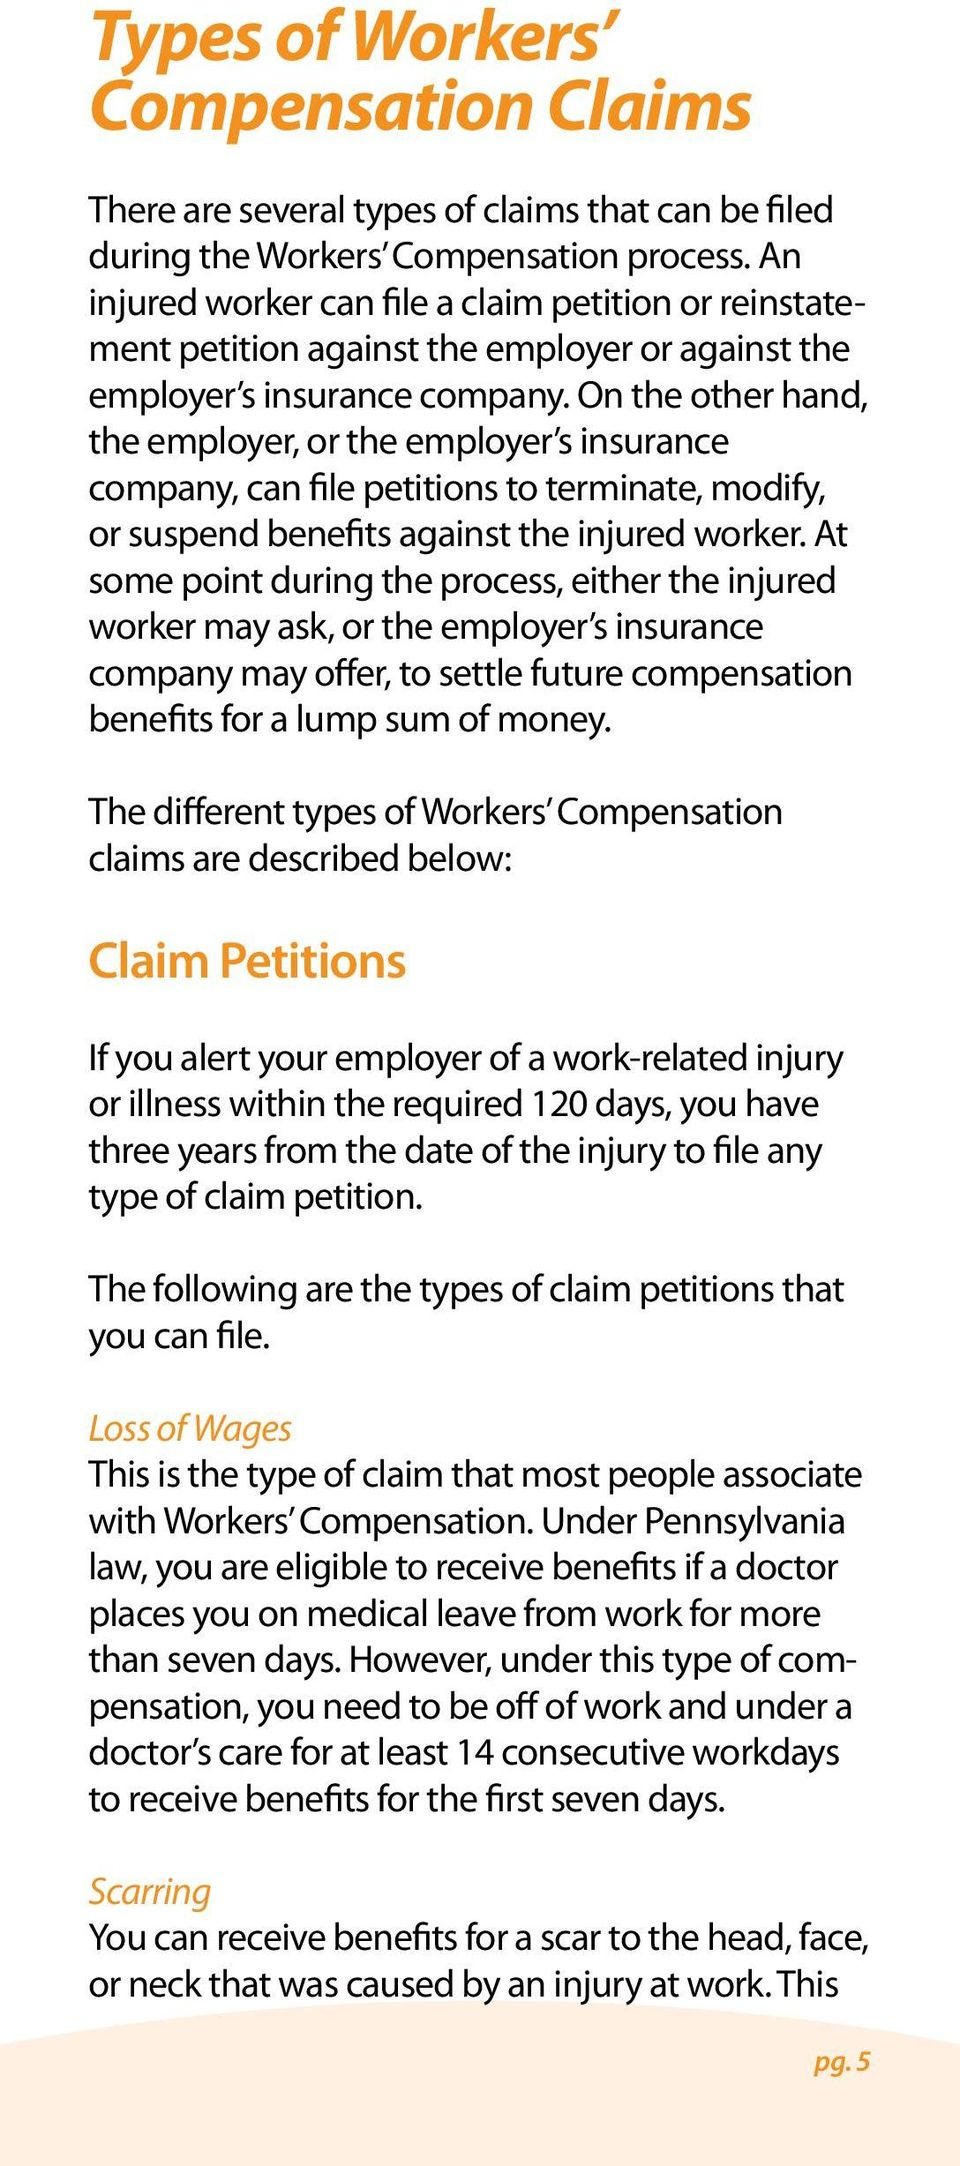 On the other hand, the employer, or the employer s insurance company, can file petitions to terminate, modify, or suspend benefits against the injured worker.